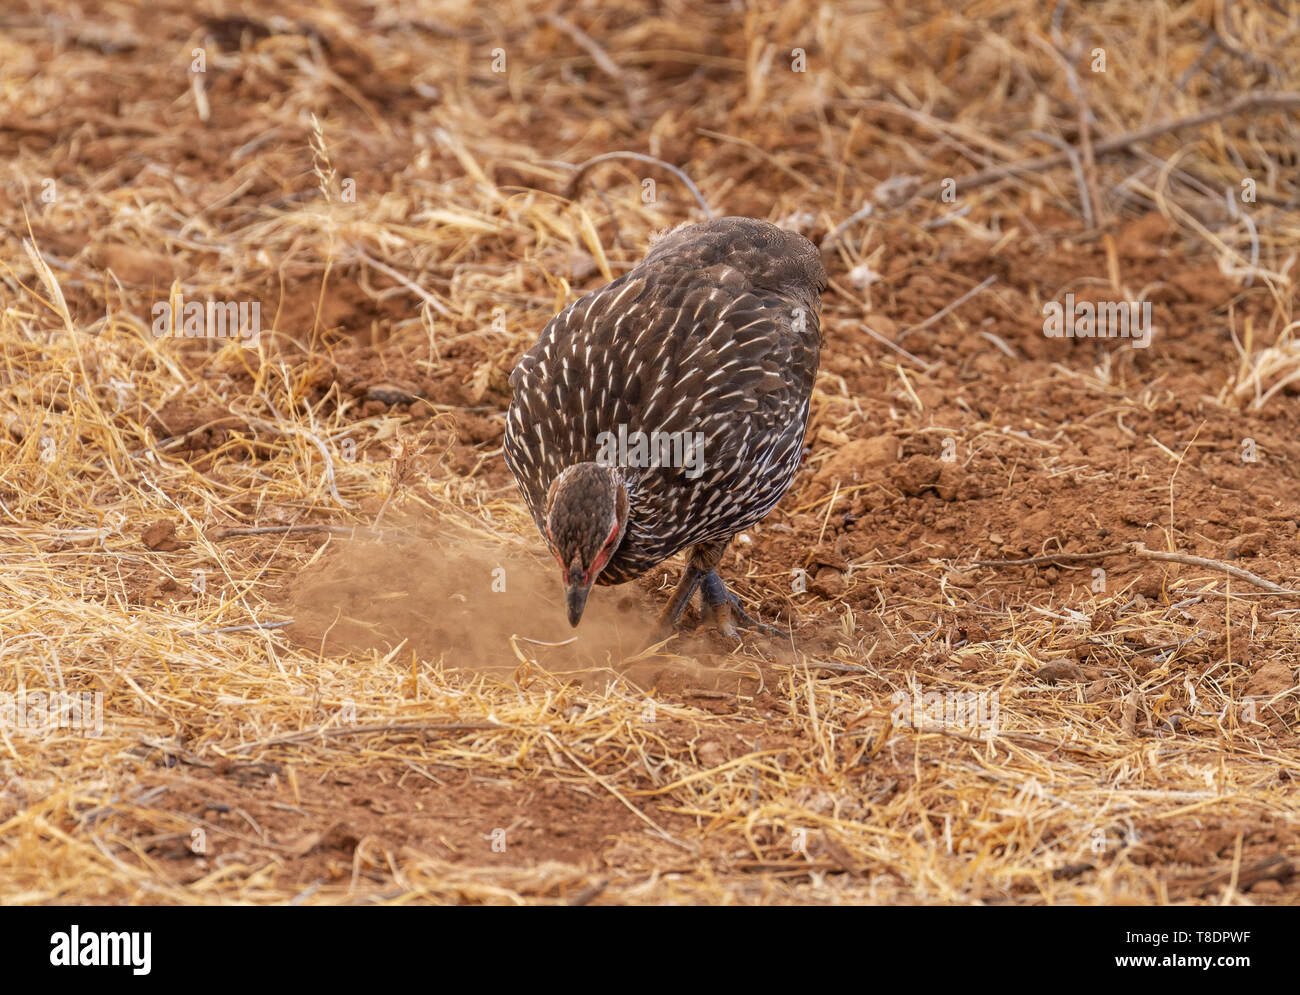 Yellow-necked francolin yellow-necked spurfow Pternistis leucoscepus digs earth with beak for food Samburu National Reserve Kenya East Africa - Stock Image